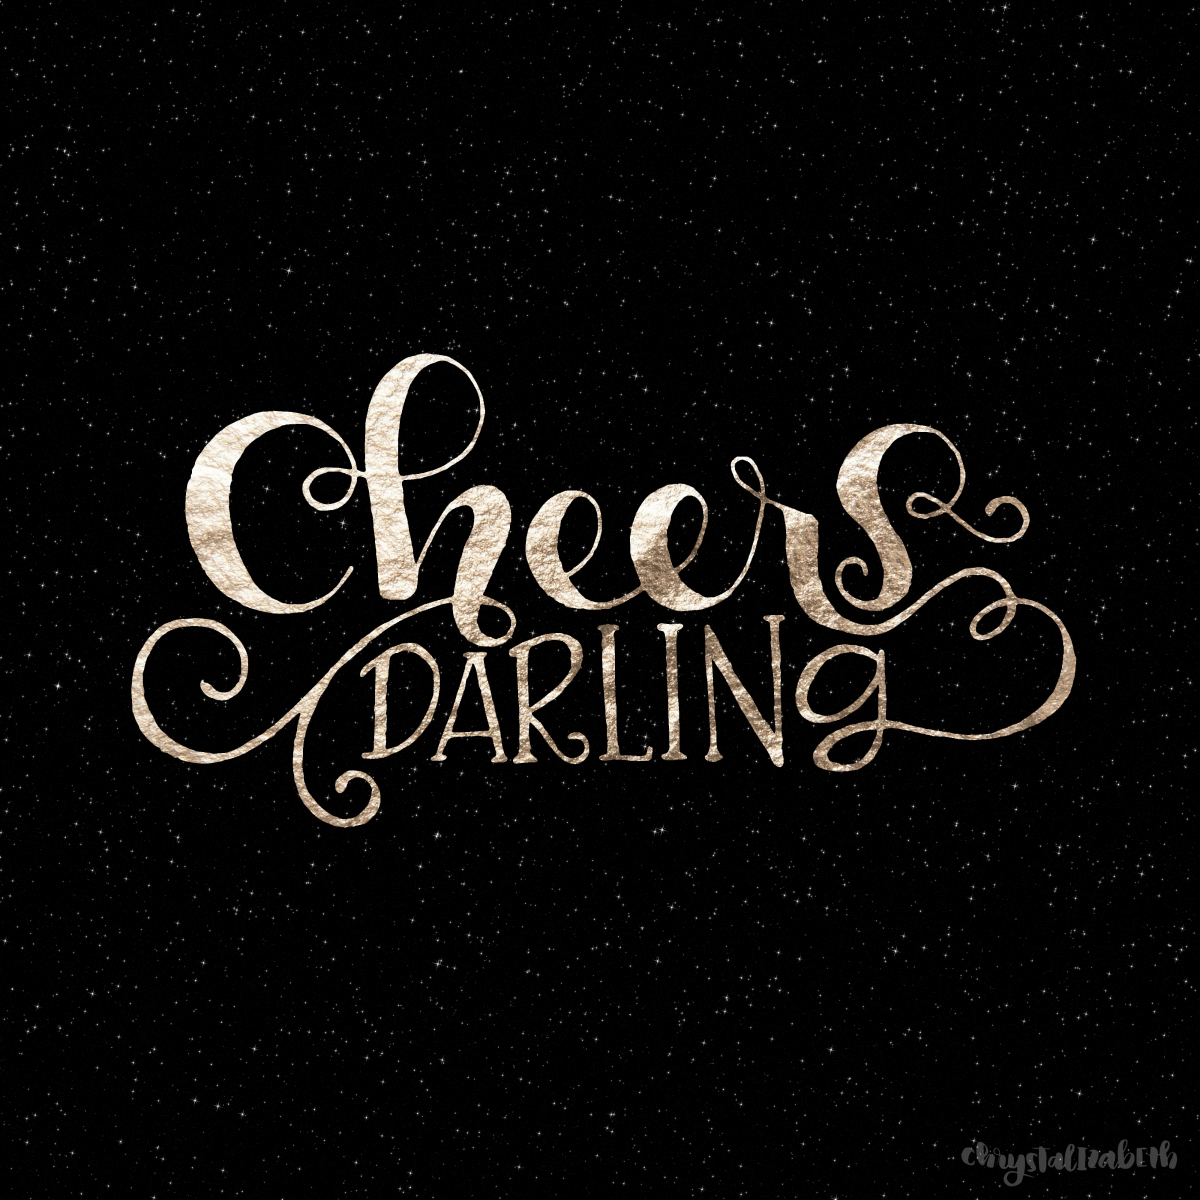 Cheers Darling! Happy New Year! [A Lettering Tutorial]